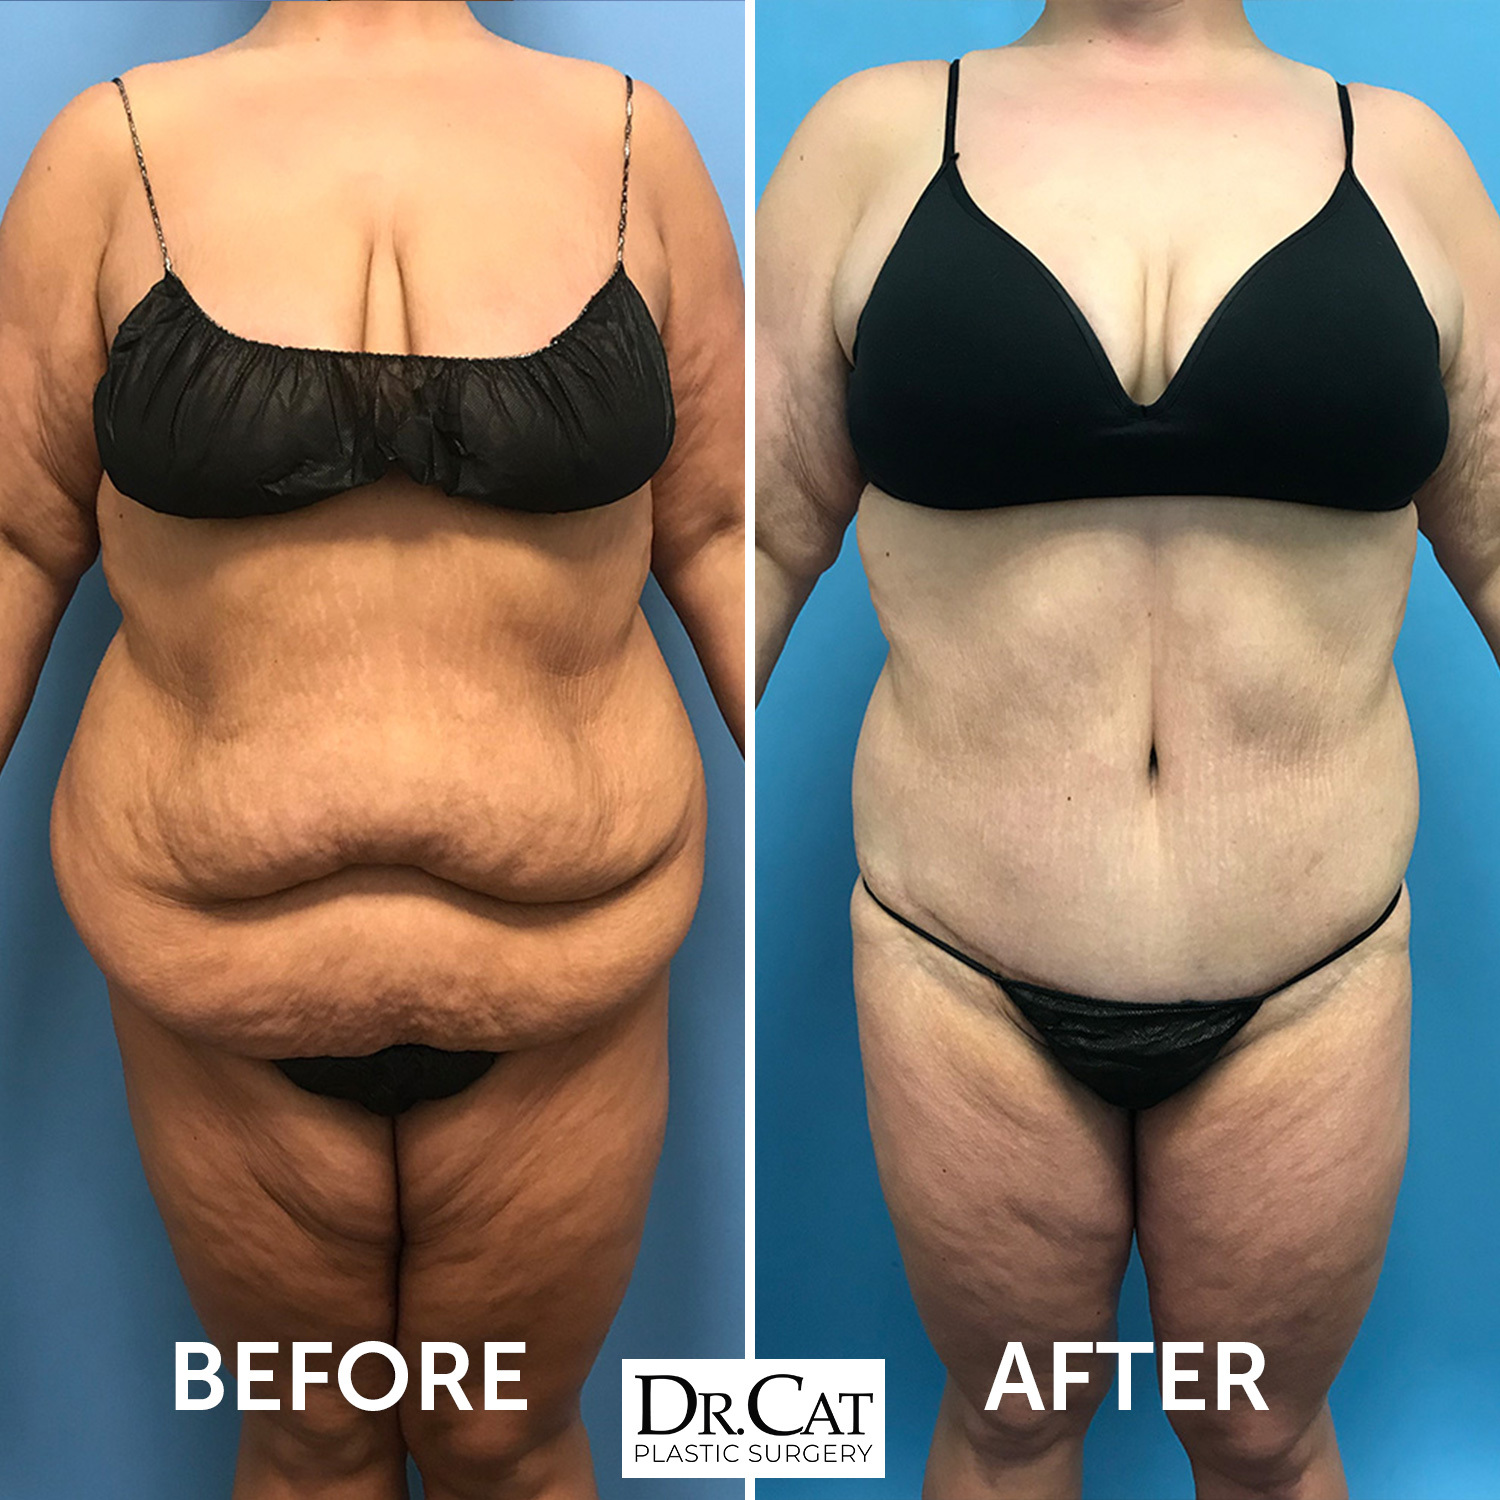 extened tummy tuck before and after photo